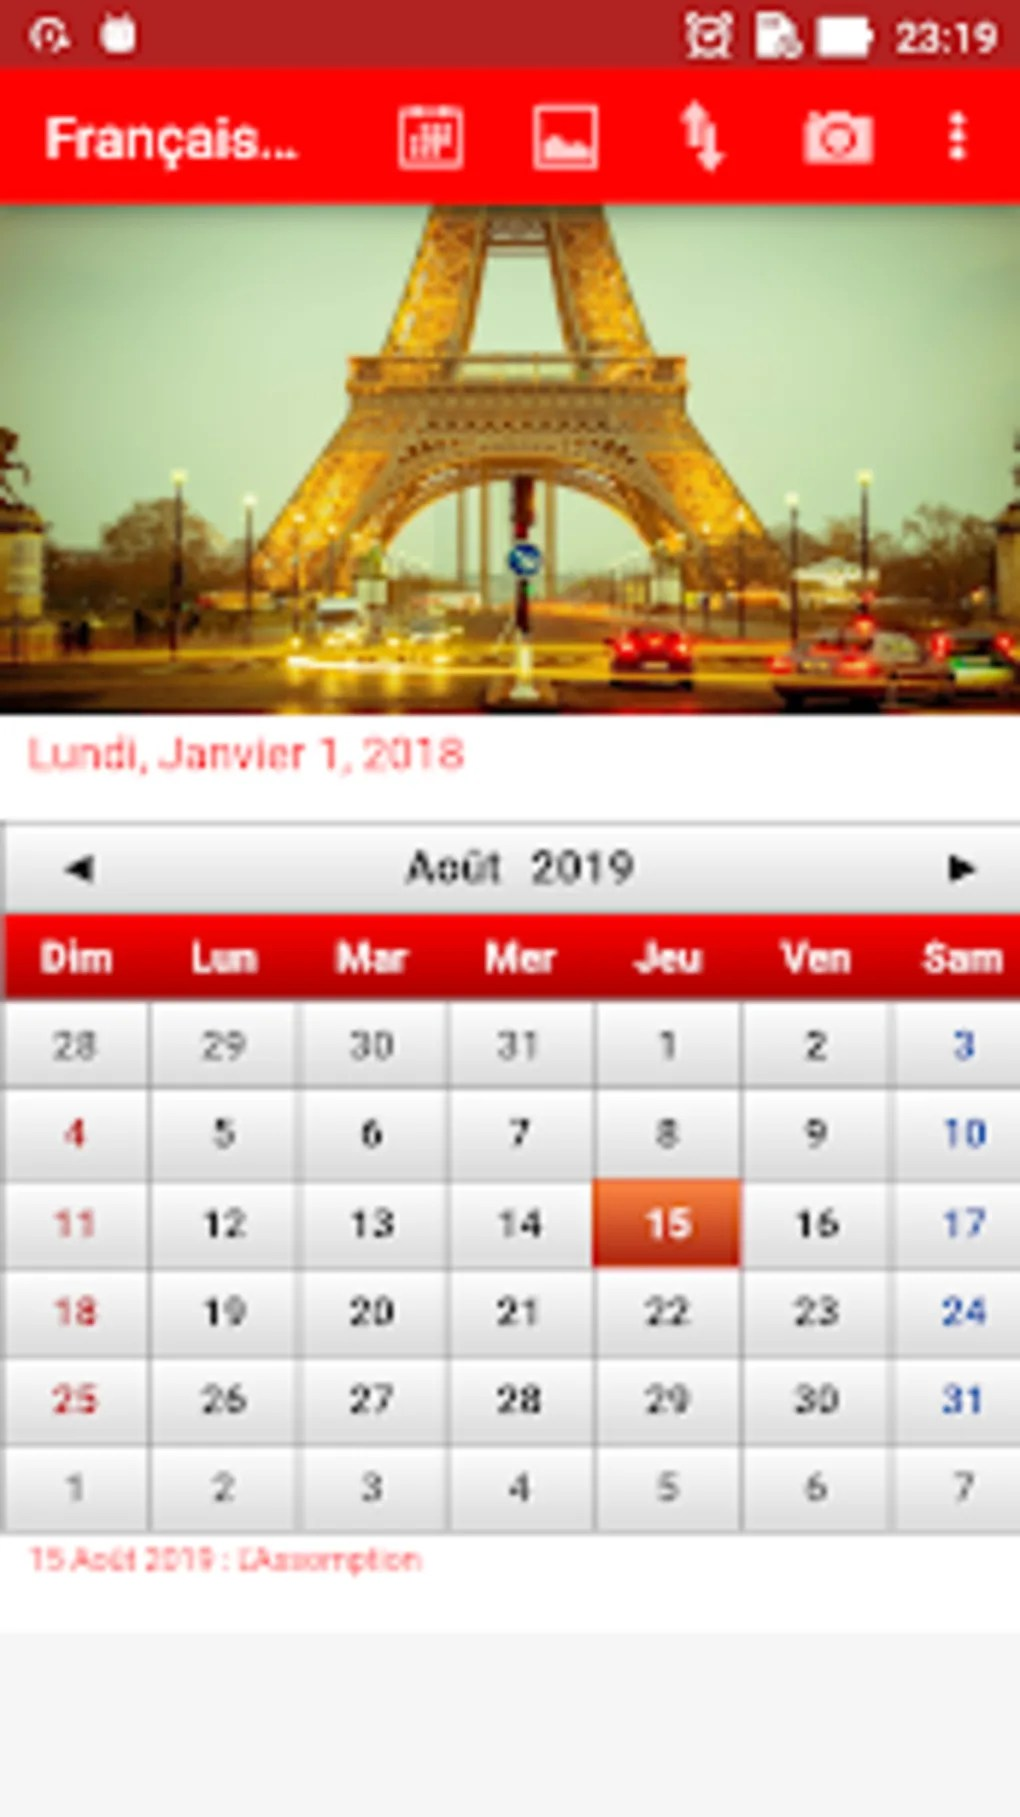 Free Calendrier Français Calendrier 2019 For Android Download